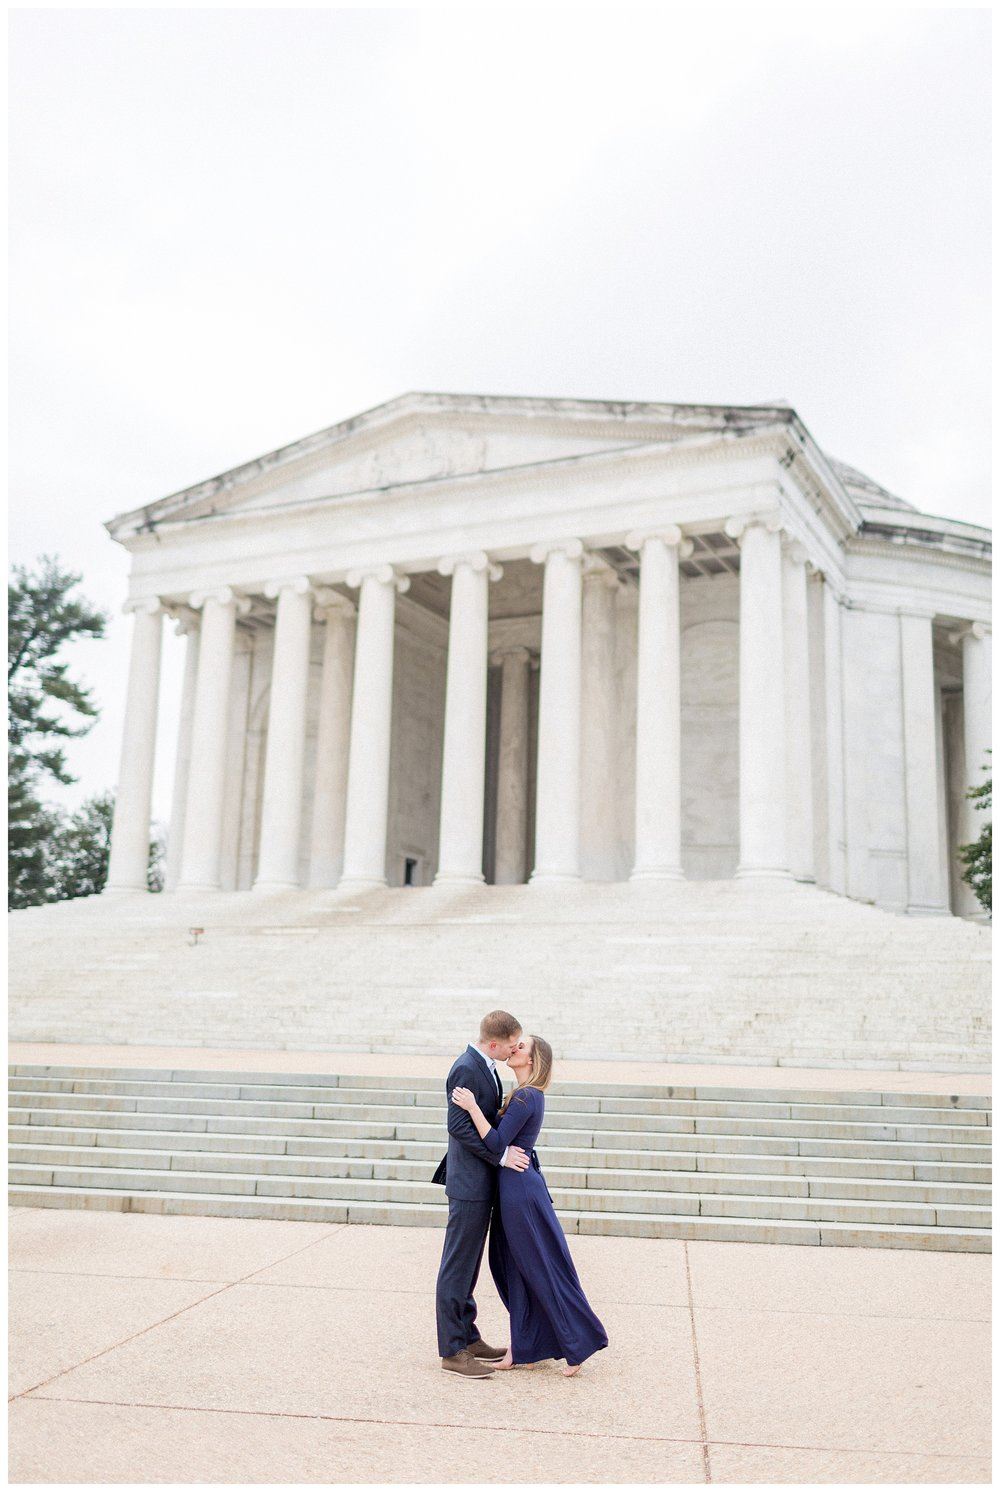 Washingon DC Engagement Photos | Jefferson Memorial Engagement | Kir Tuben_0025.jpg